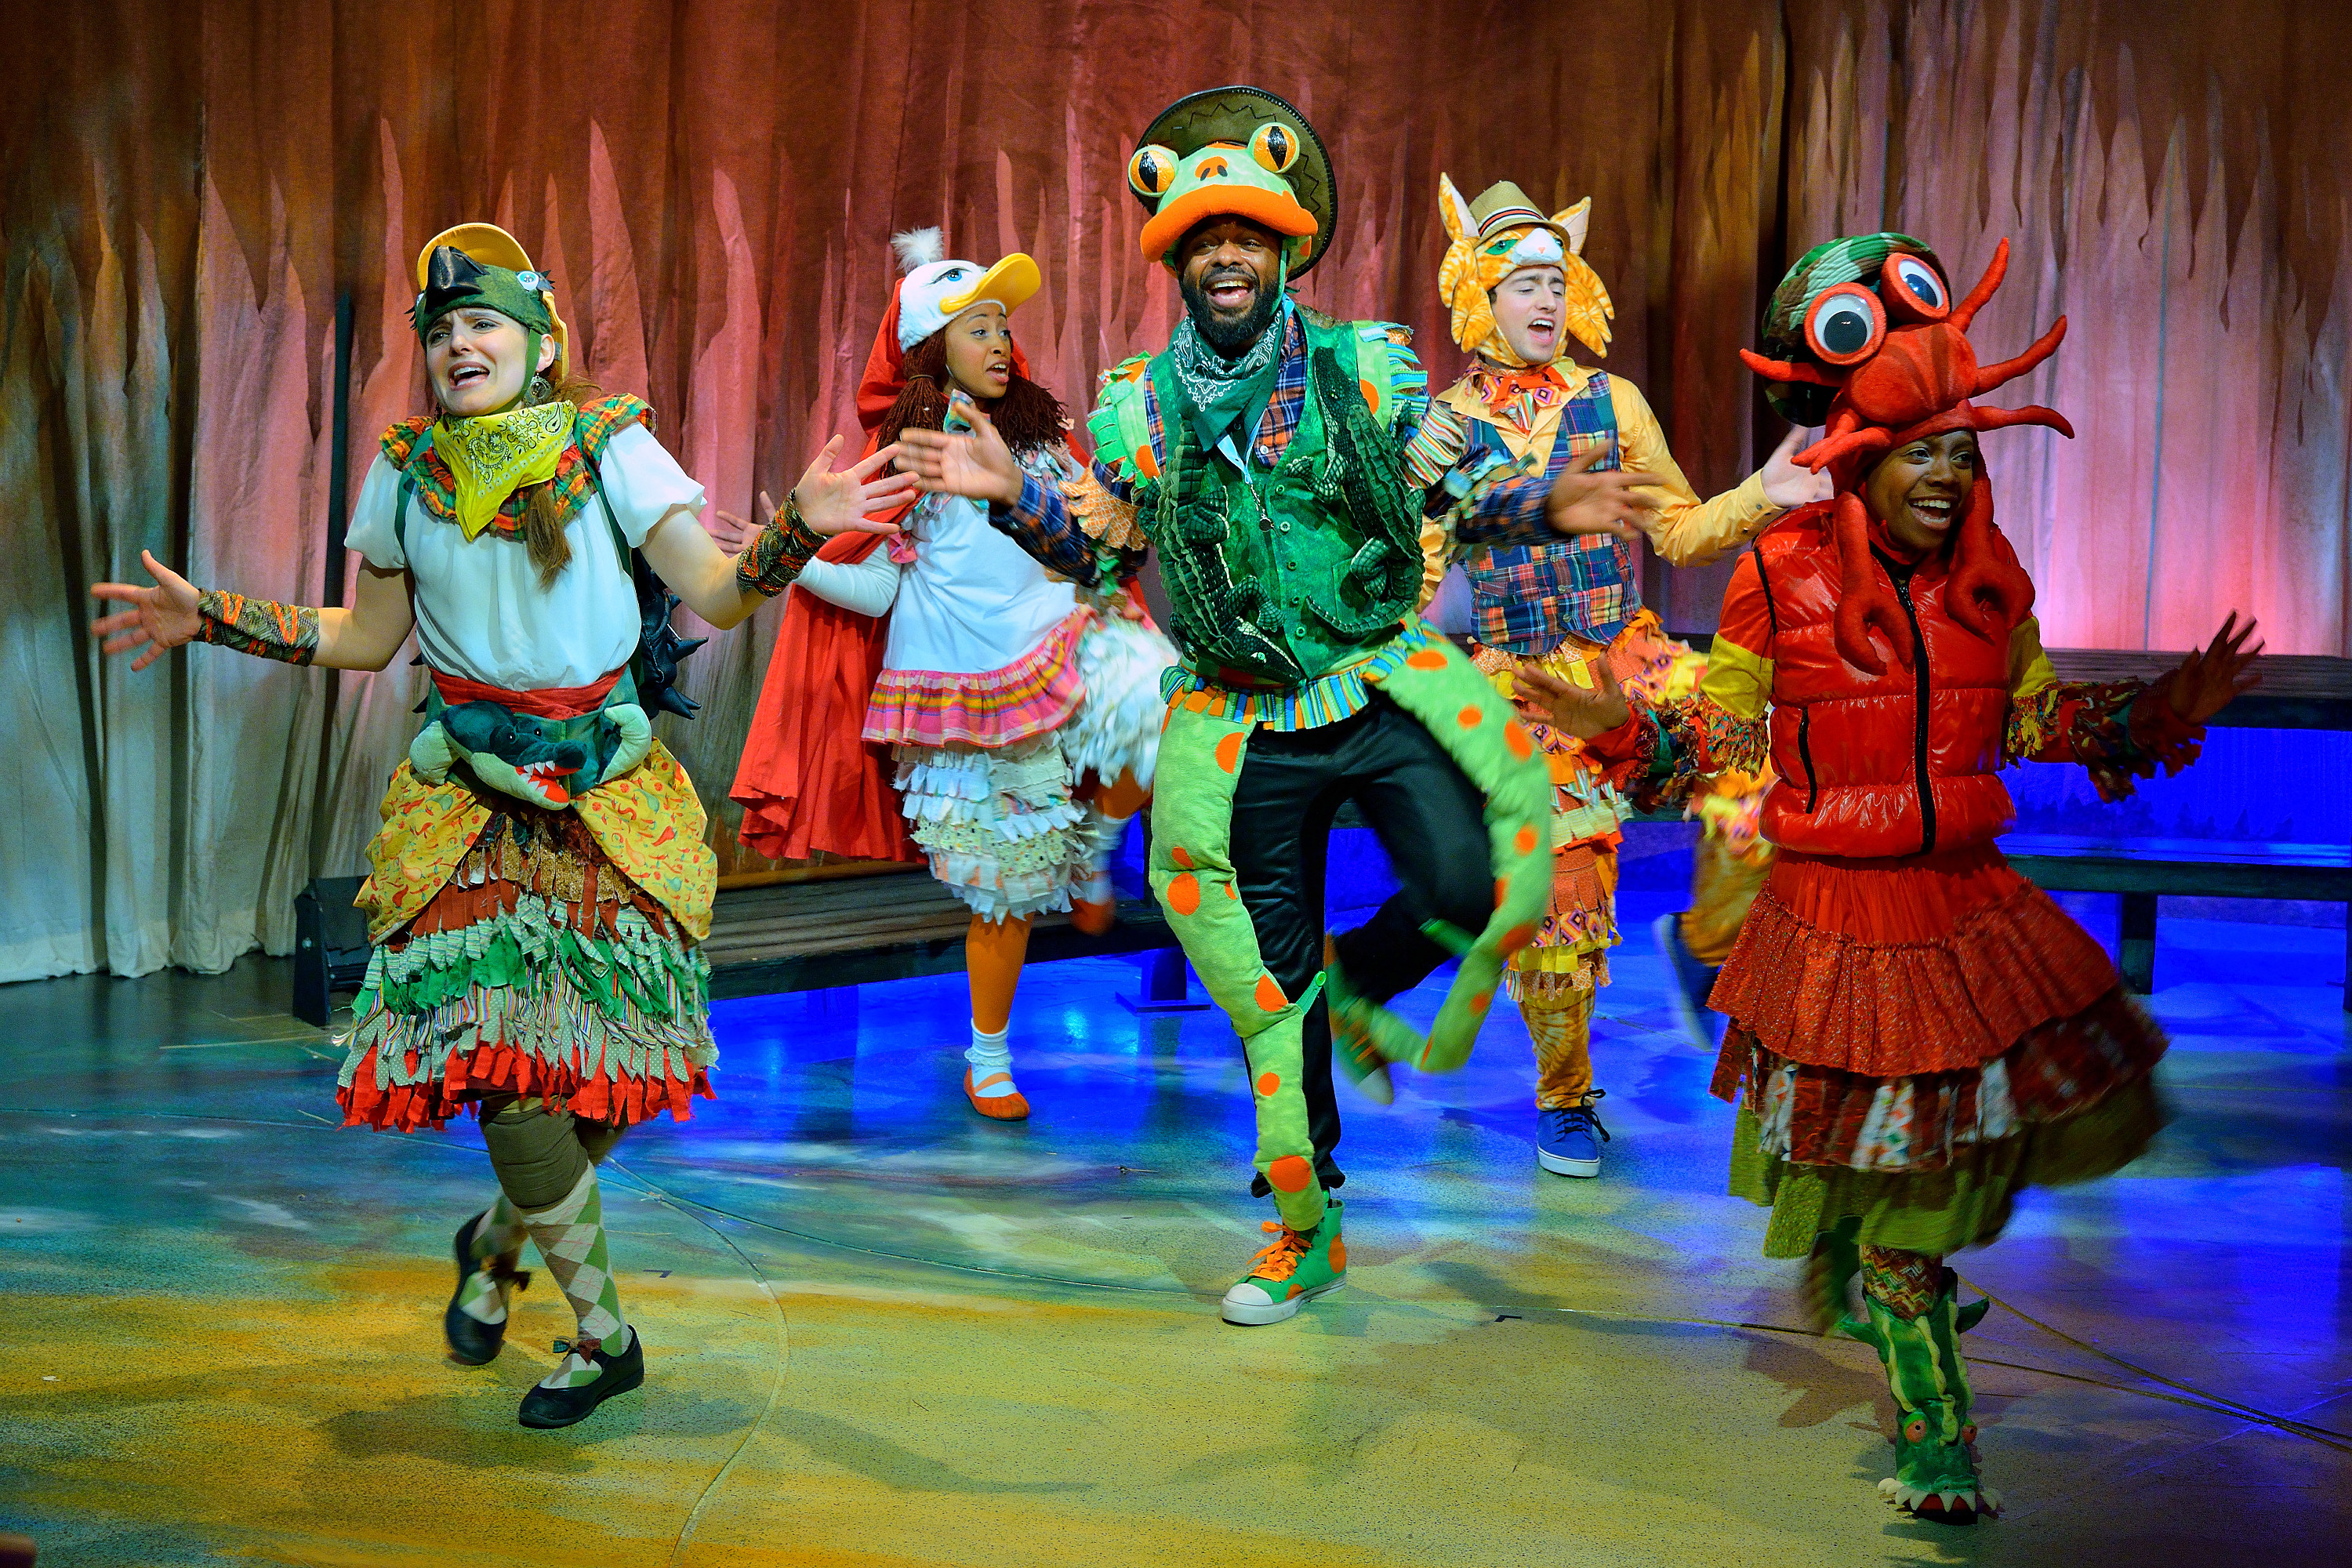 BWW Reviews: PETITE ROUGE: A CAJUN RED RIDING HOOD Delights at Adventure Theatre MTC